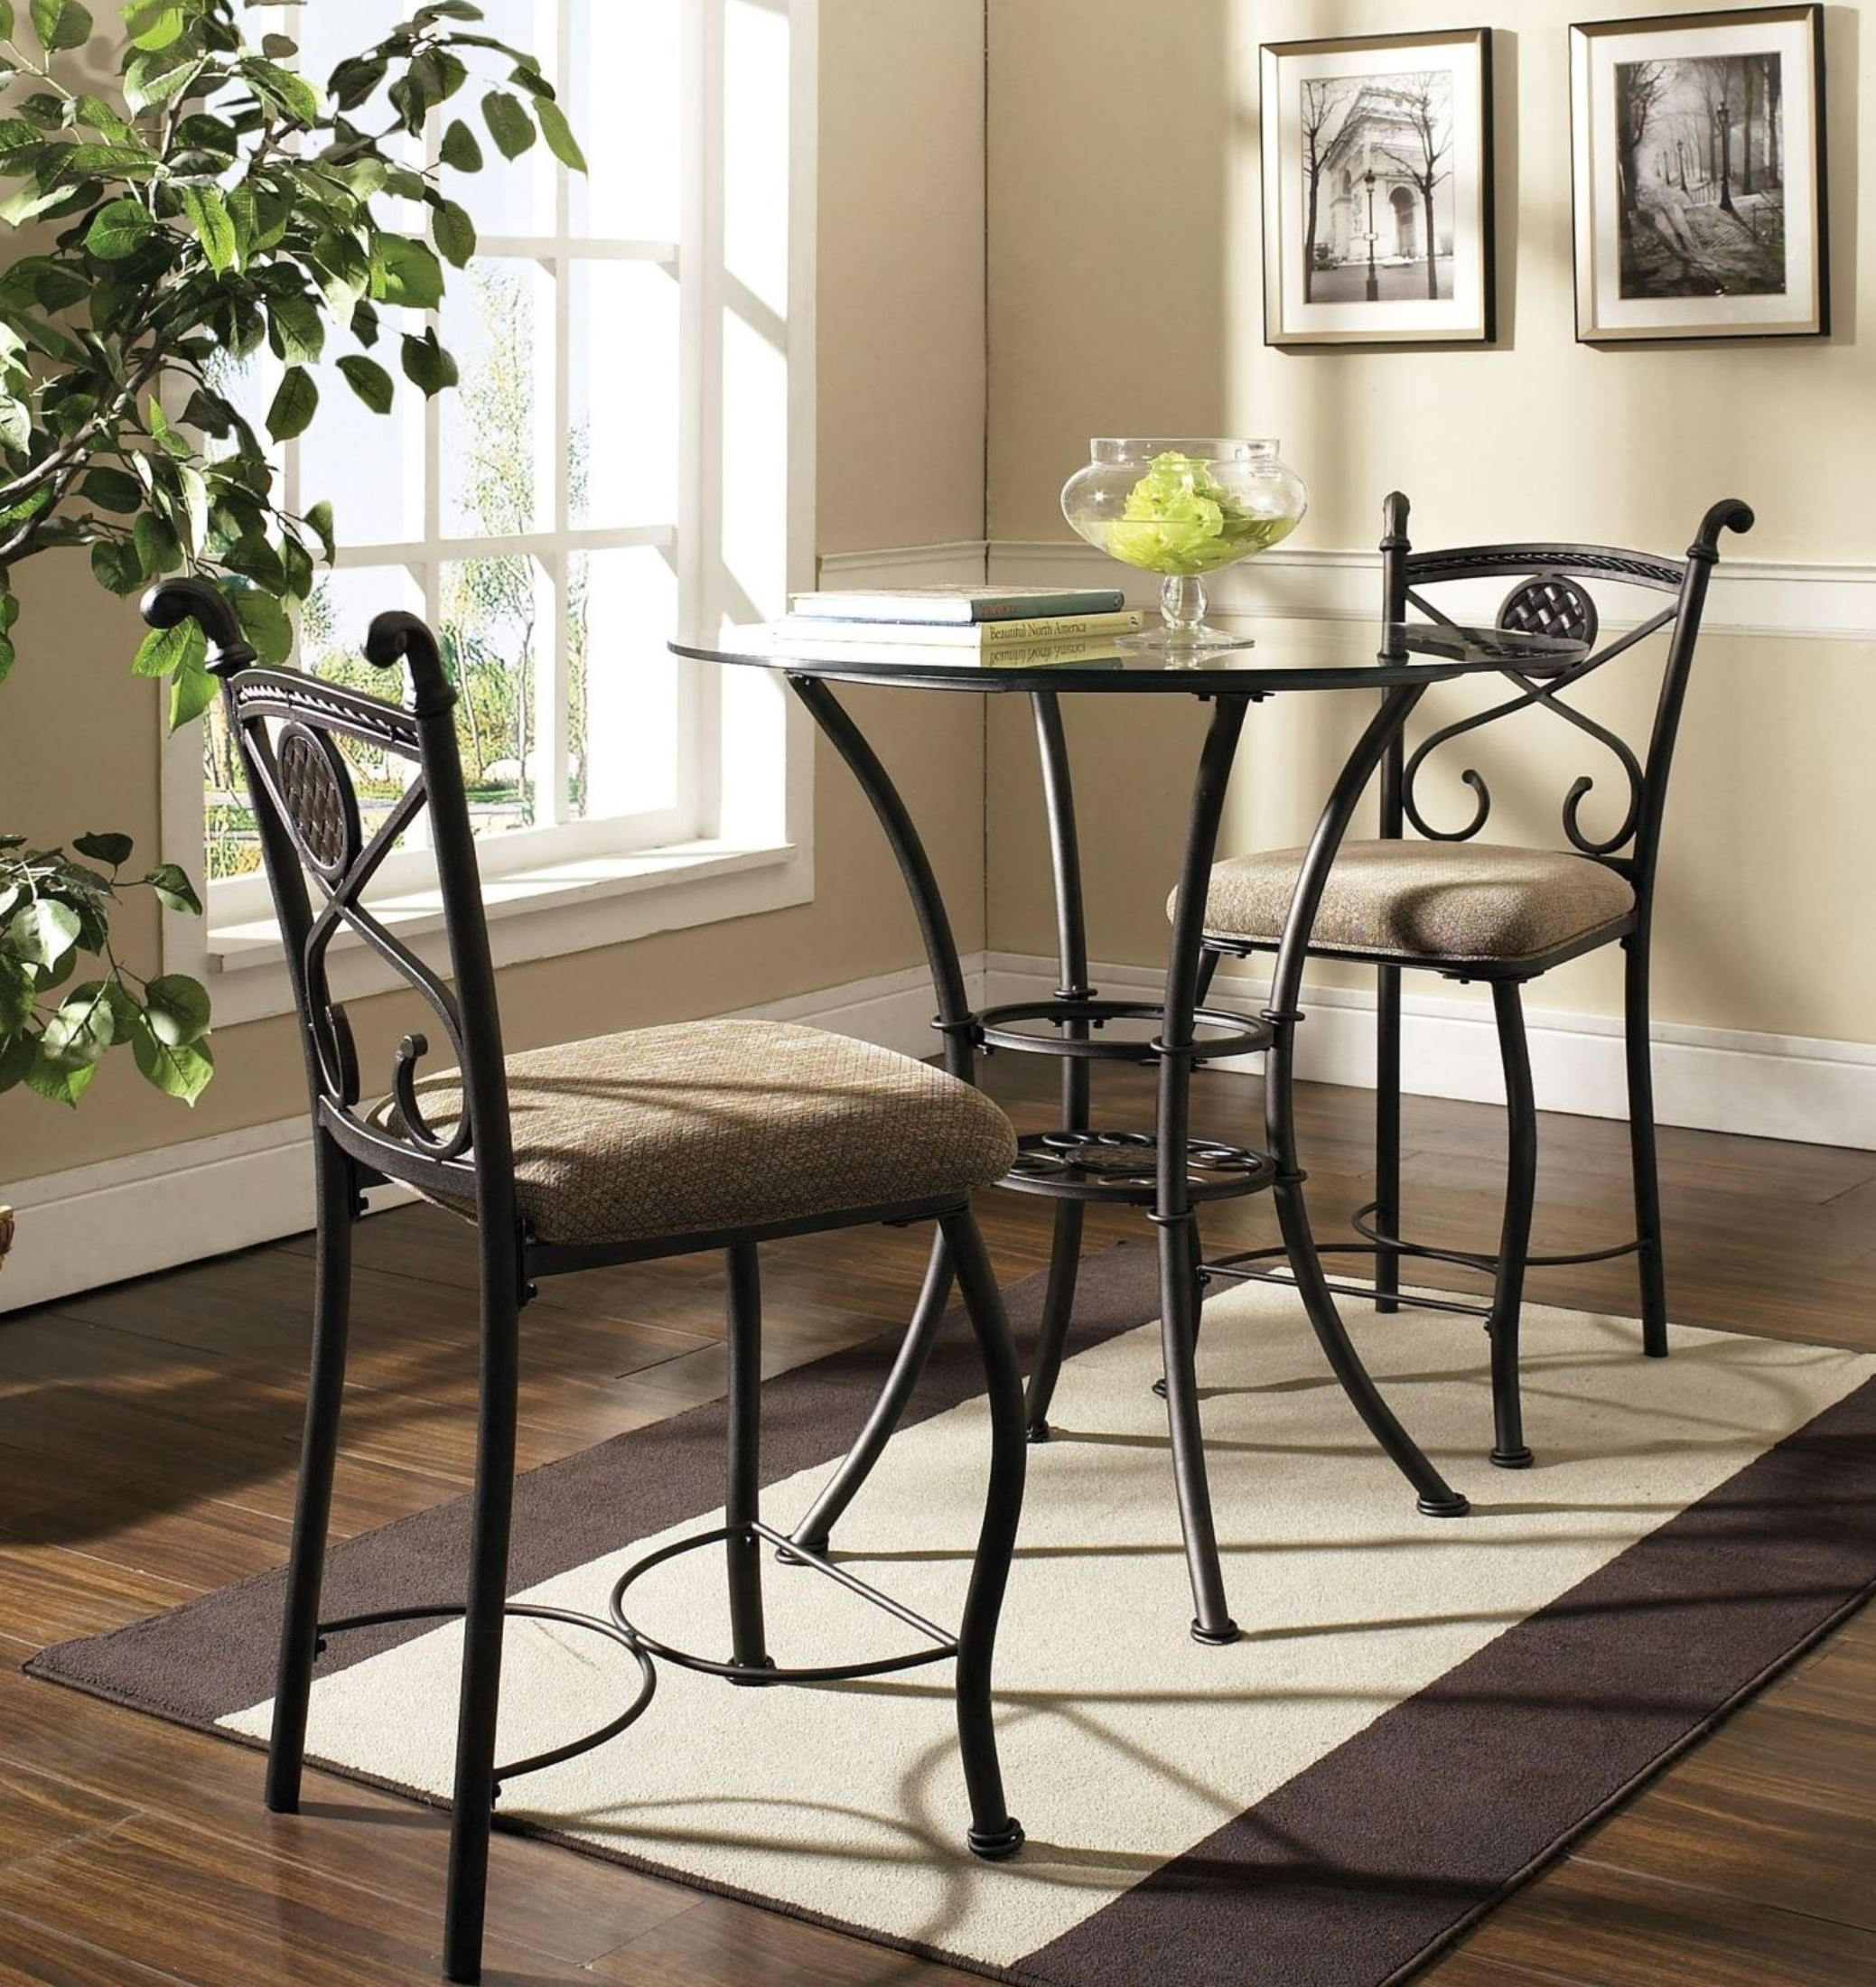 Brookfield Glass Round Counter Height Dining Room Set from Steve ...